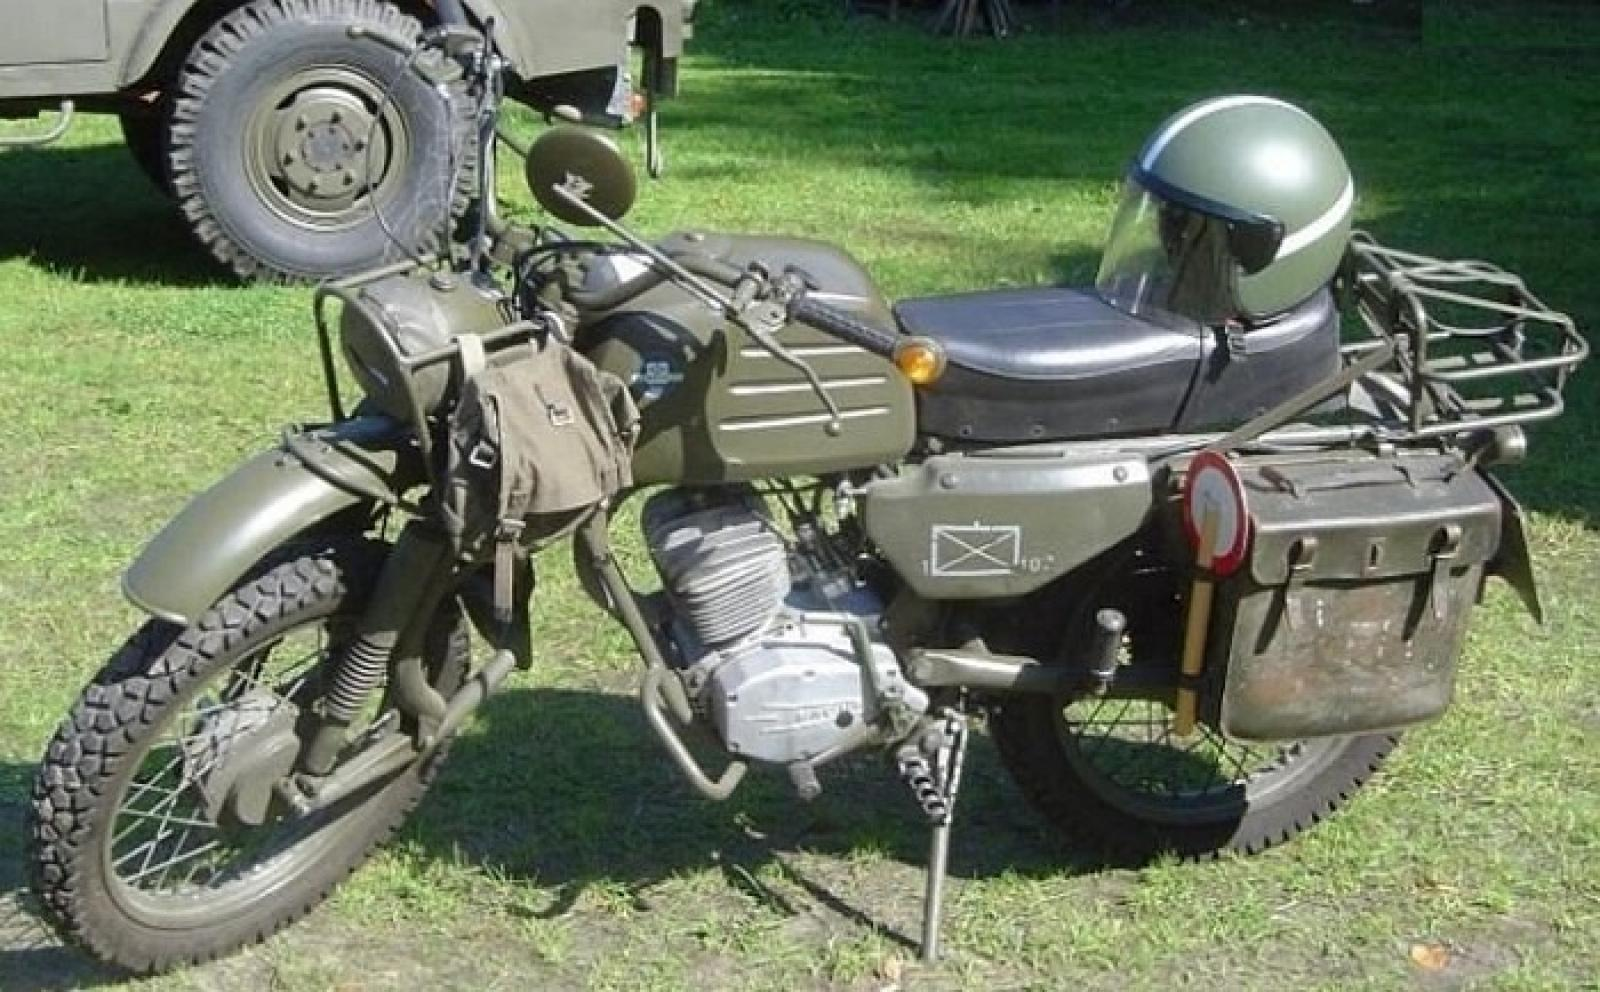 Hercules K 125 Military 1988 images #74636